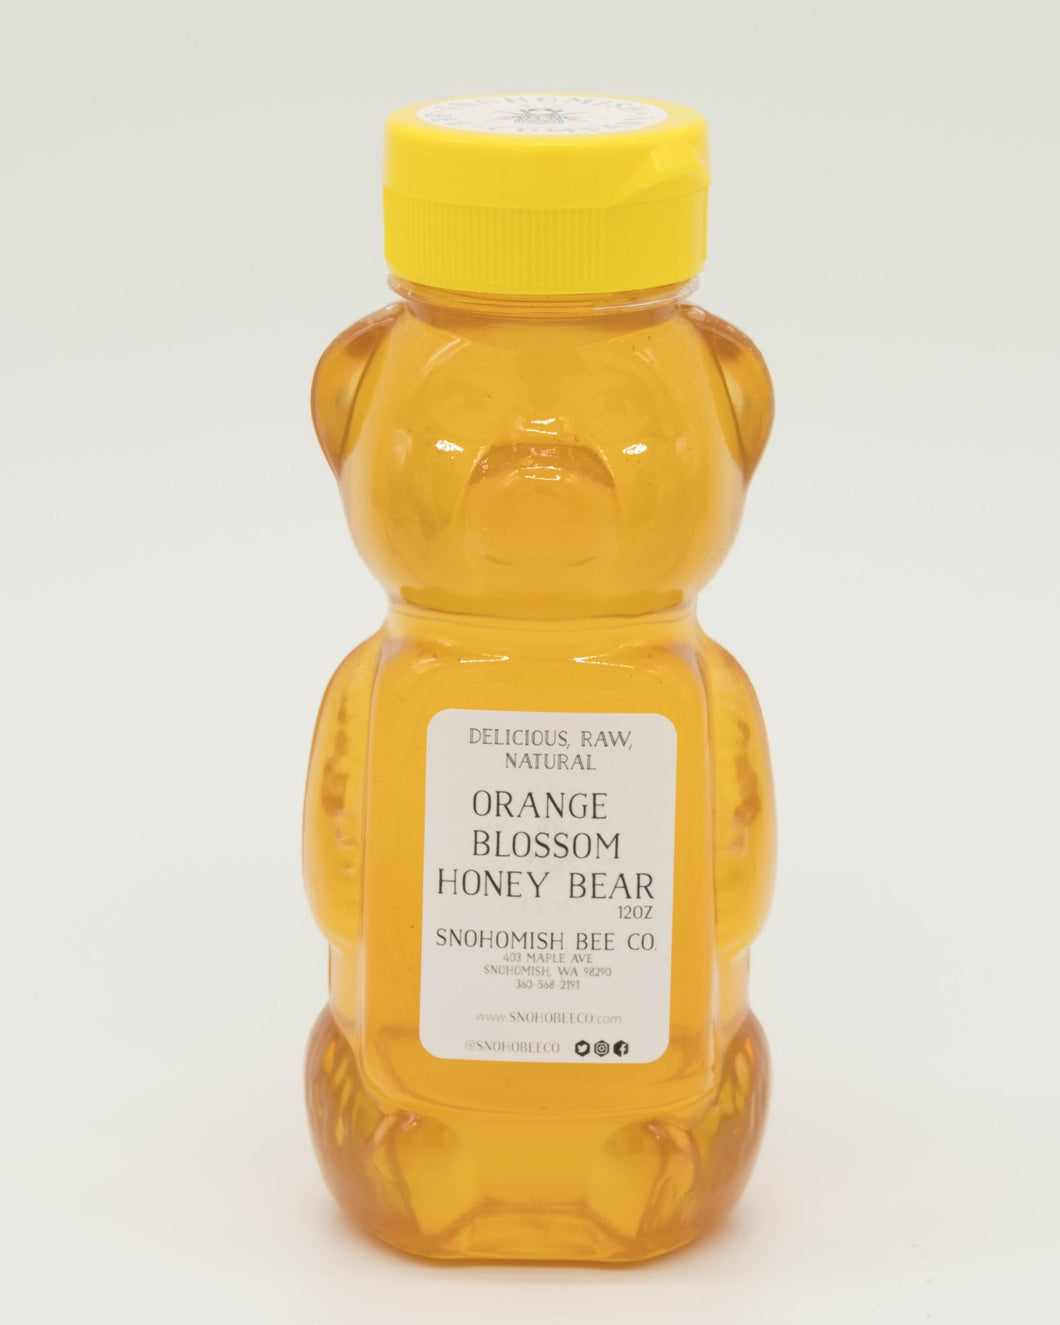 Snohomish Bee Company Orange Blossom Honey